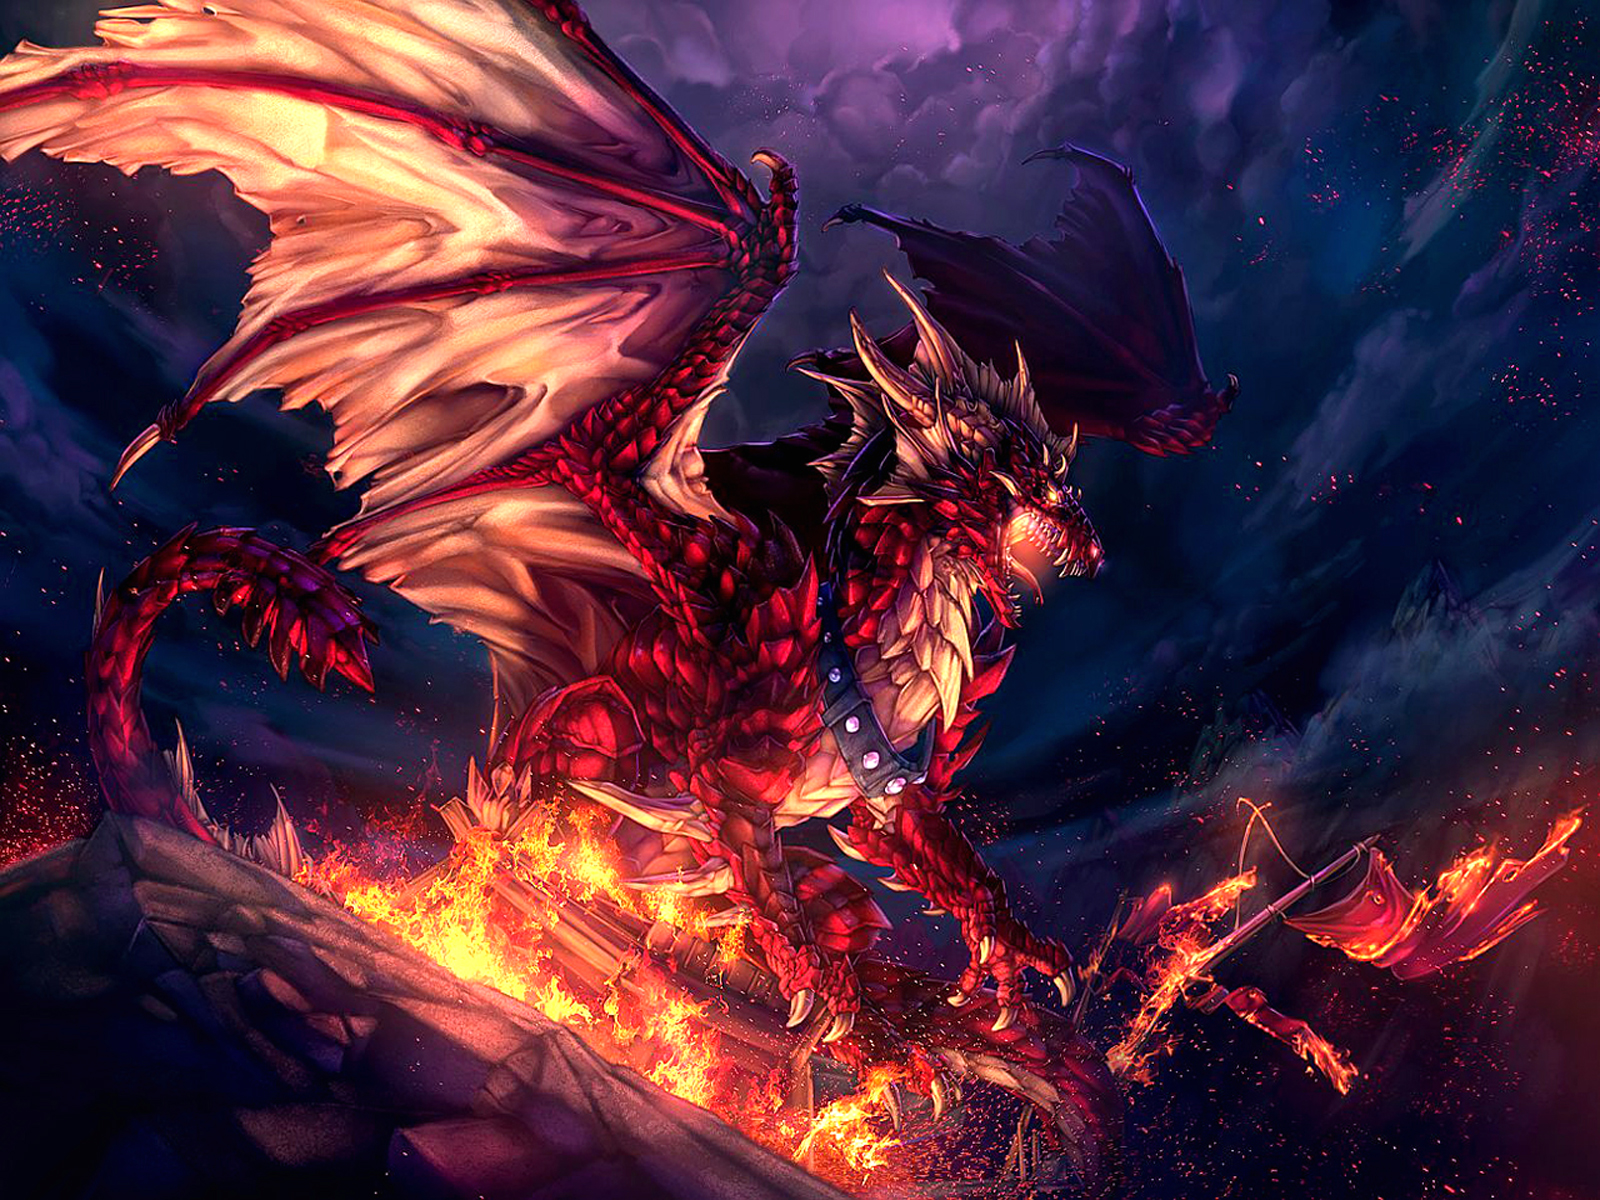 Dragons images Dragon HD wallpaper and background photos 1600x1200